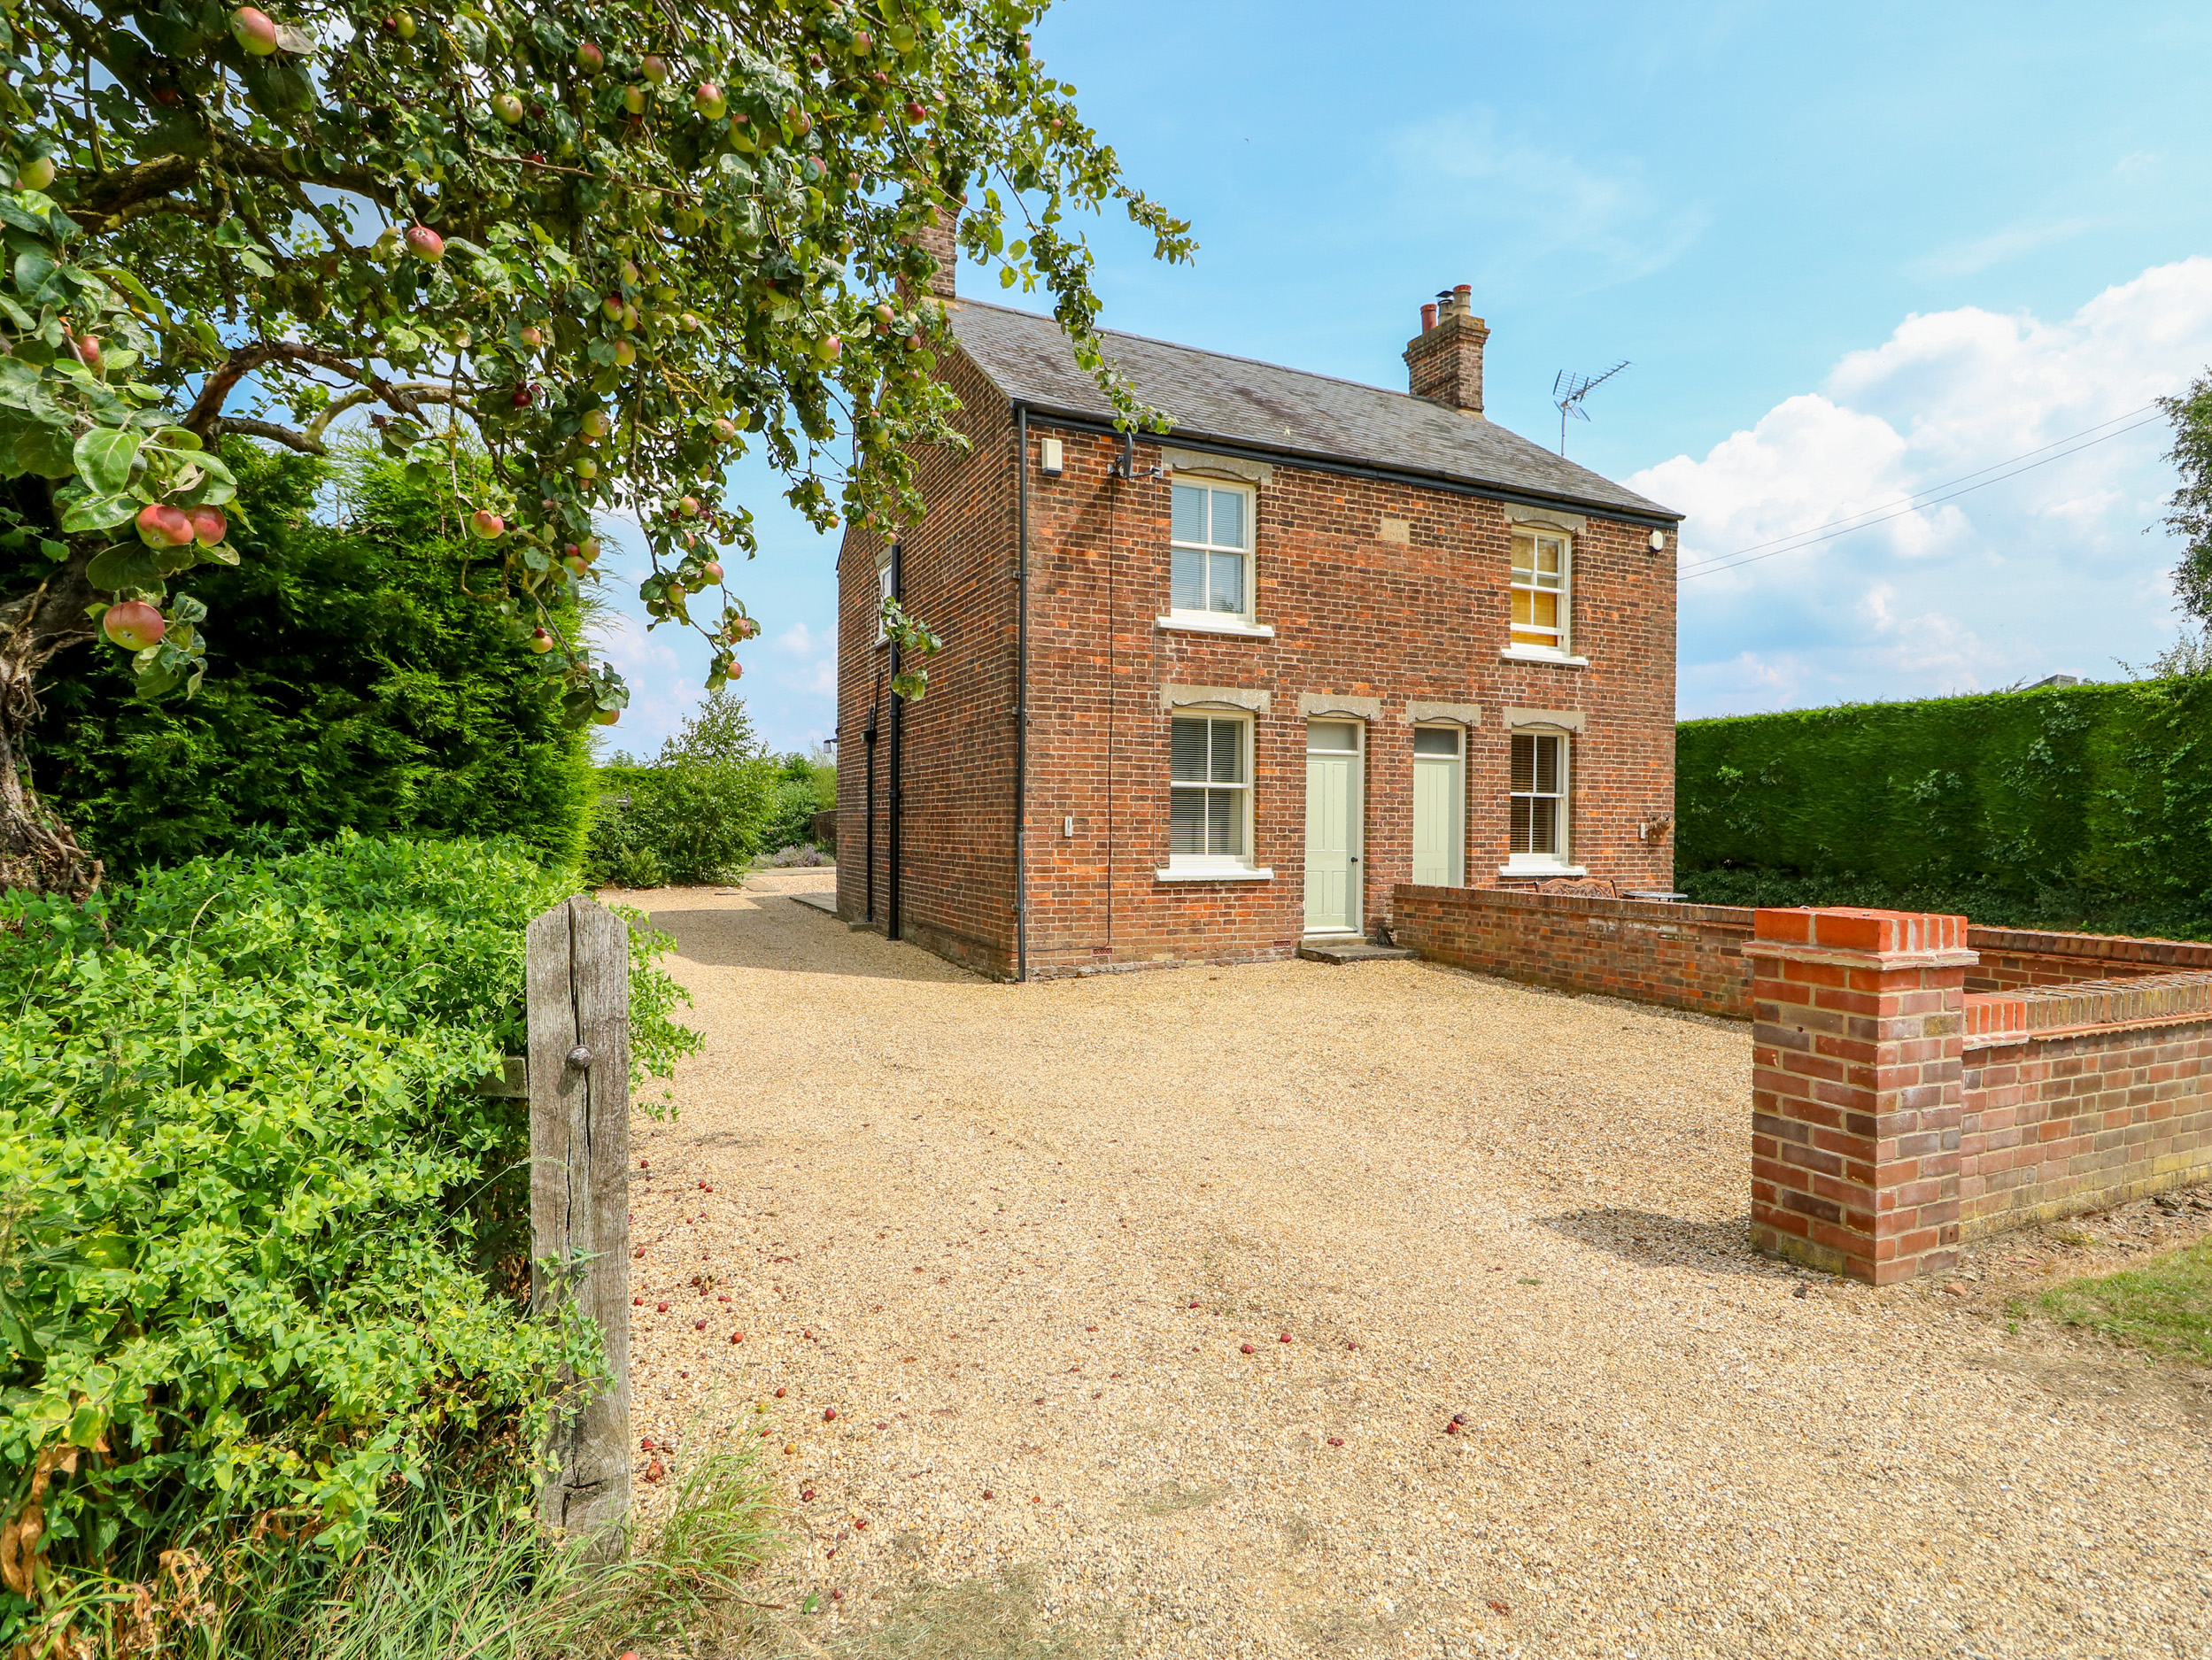 3 bedroom Cottage for rent in King's Lynn